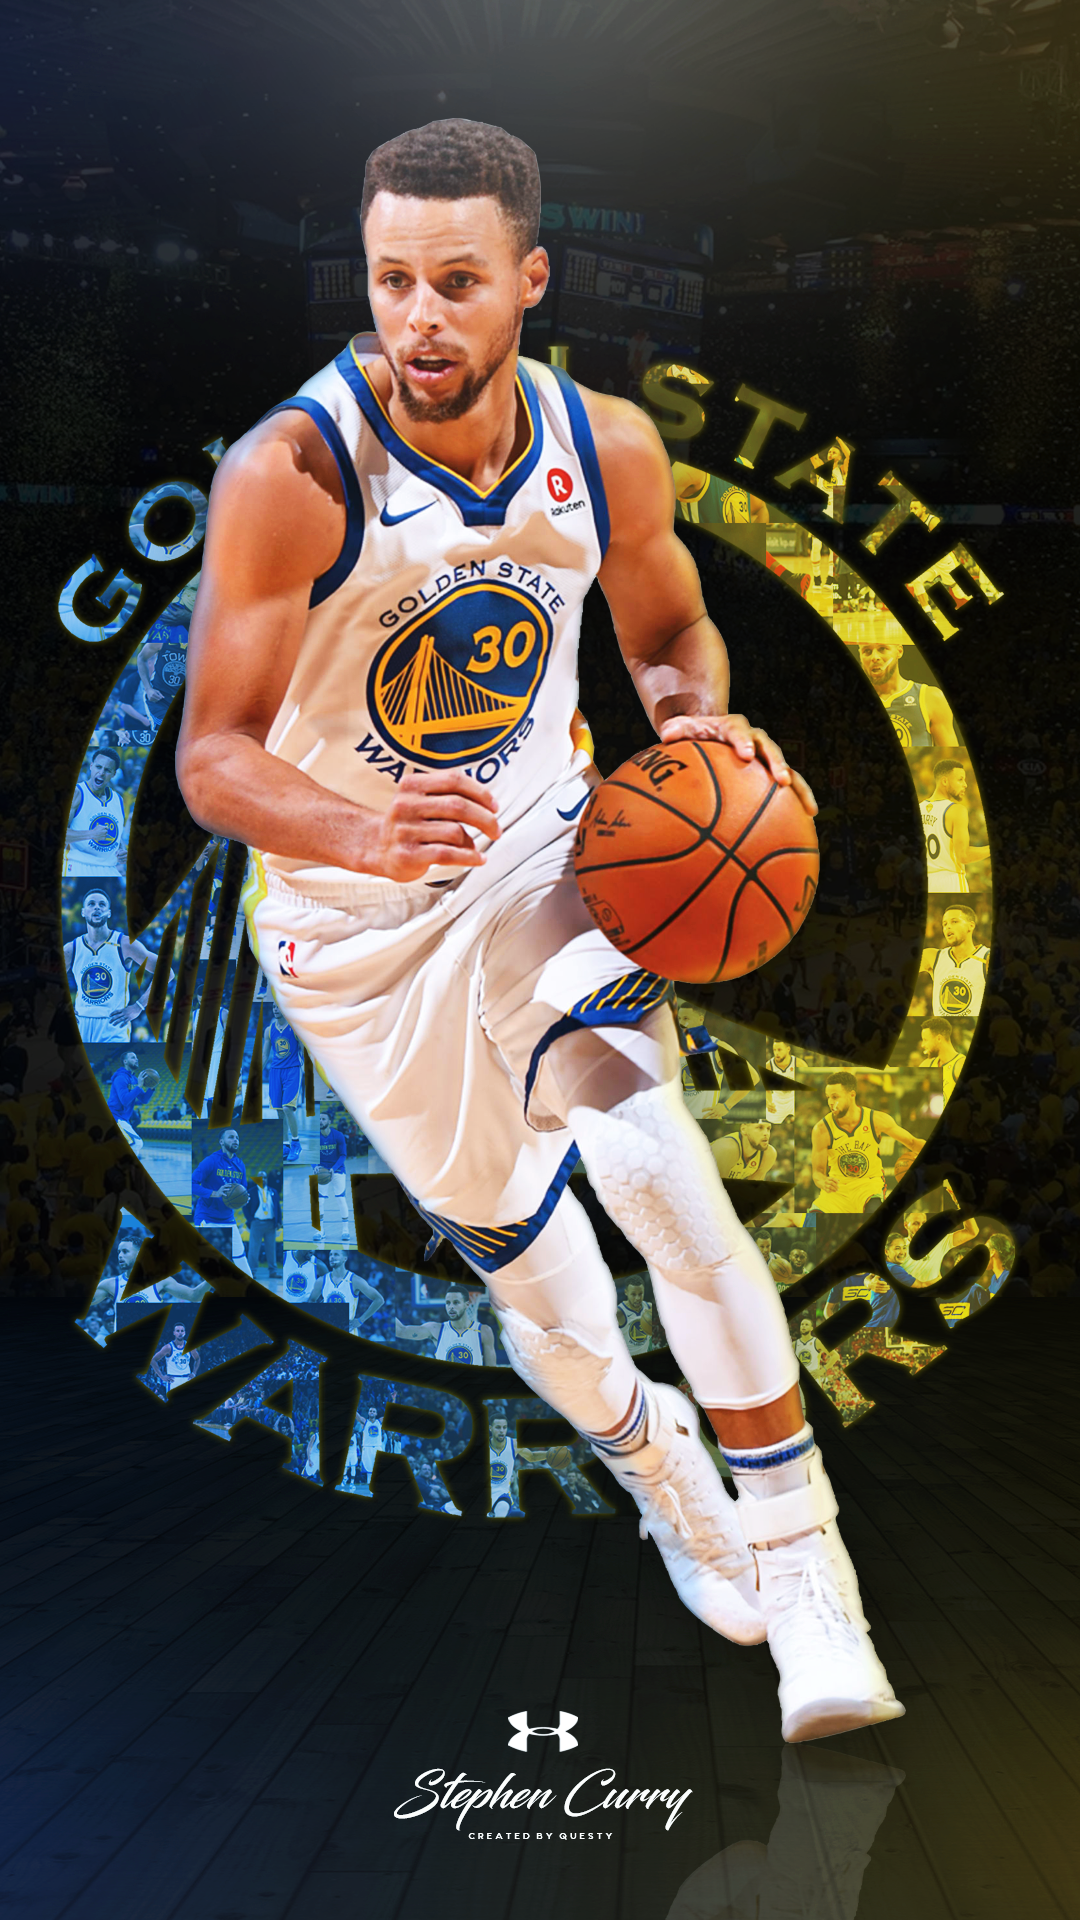 Free download Stephen Curry Wallpaper 1080p Golden State Warriors Wallpaper 1080x1920 for your ...